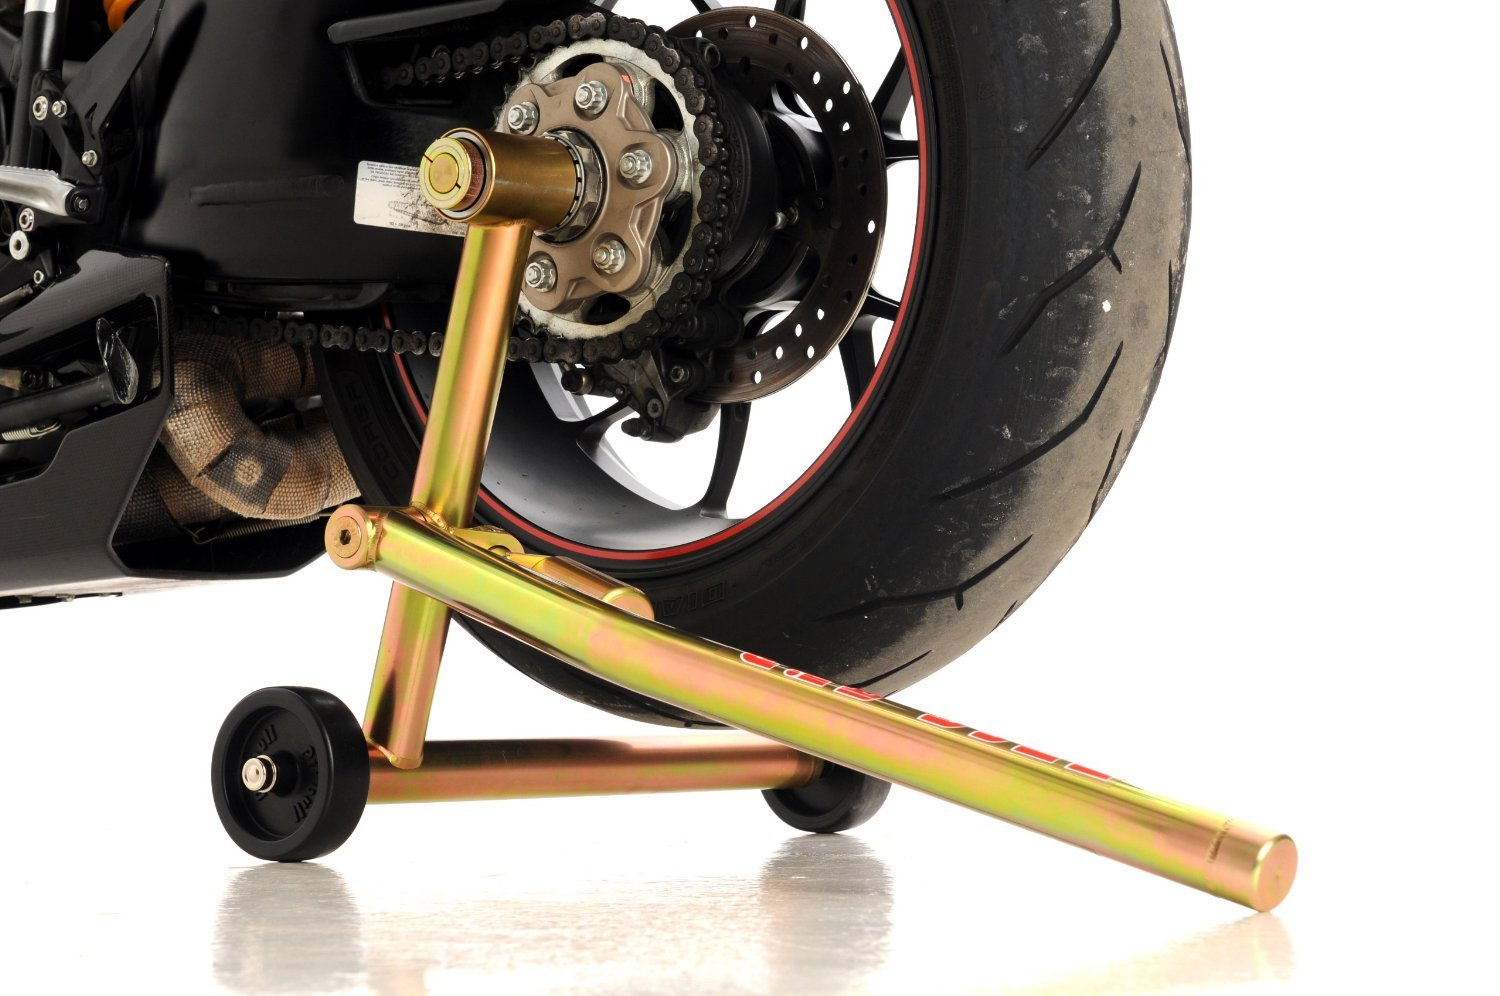 Pit Bull Hybrid One Armed Rear Stand, Ducati 1098/1198/1199/1299, Supersport S, Diavel, Multistrada 1200 (w/ pins for both sides of the bike). Single ...